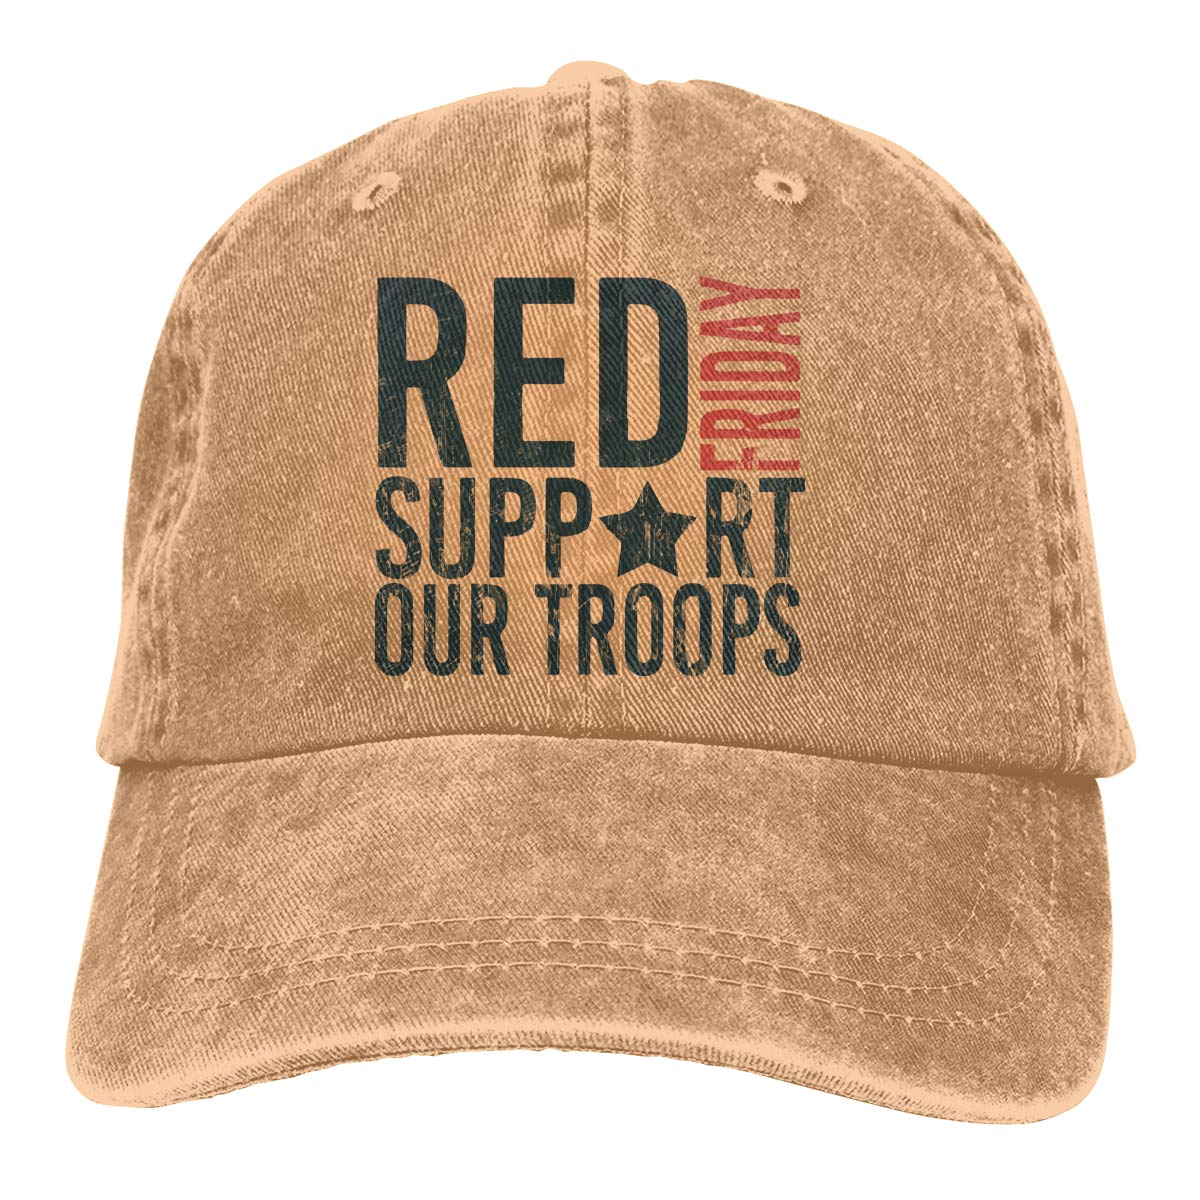 RED Friday Vintage Washed Dyed Cotton Twill Low Profile Adjustable Baseball Denim Cap